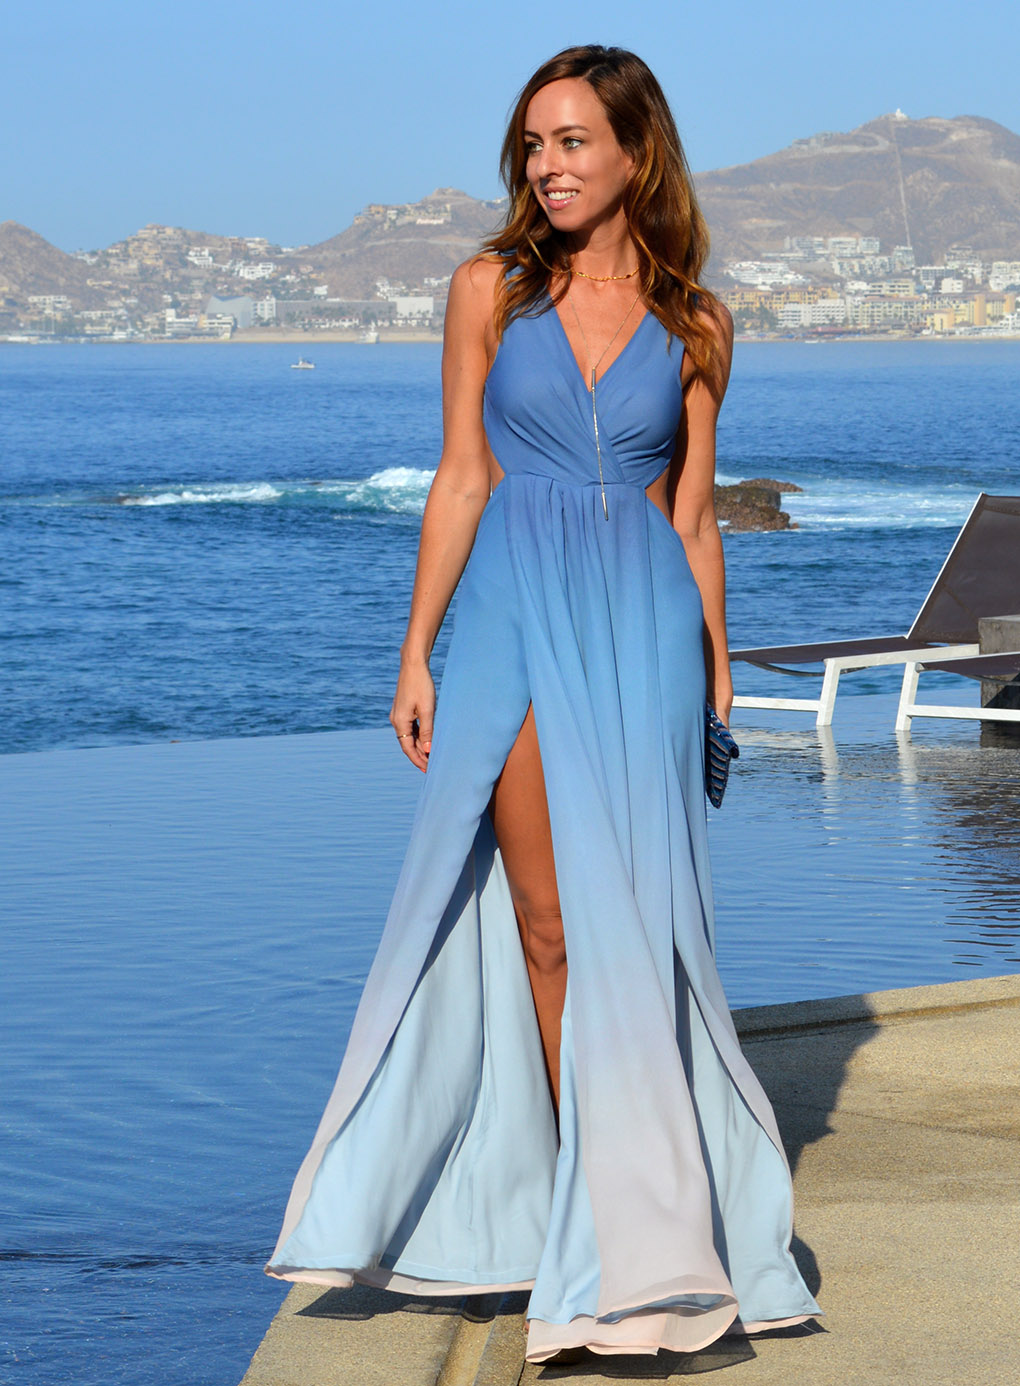 destination wedding guest dresses Dresses For Beach Wedding Guest X Disclaimer We do not own any of these pictures graphics All the images are no